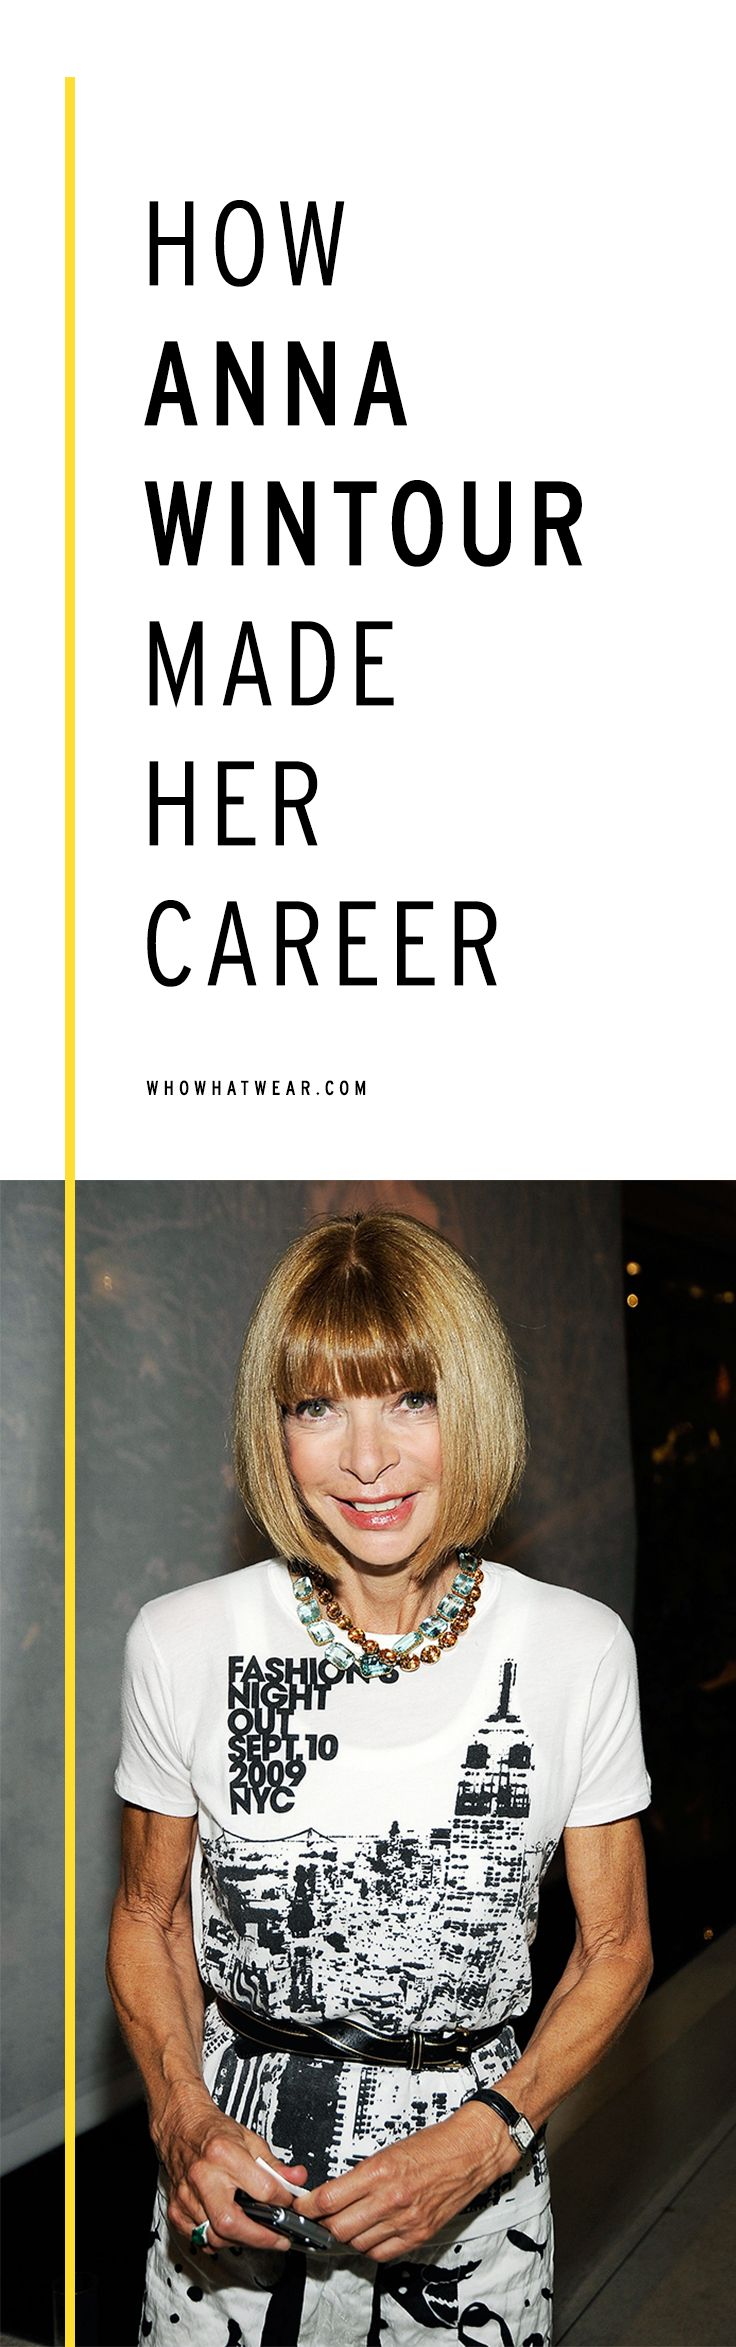 How to make a career like Anna Wintour